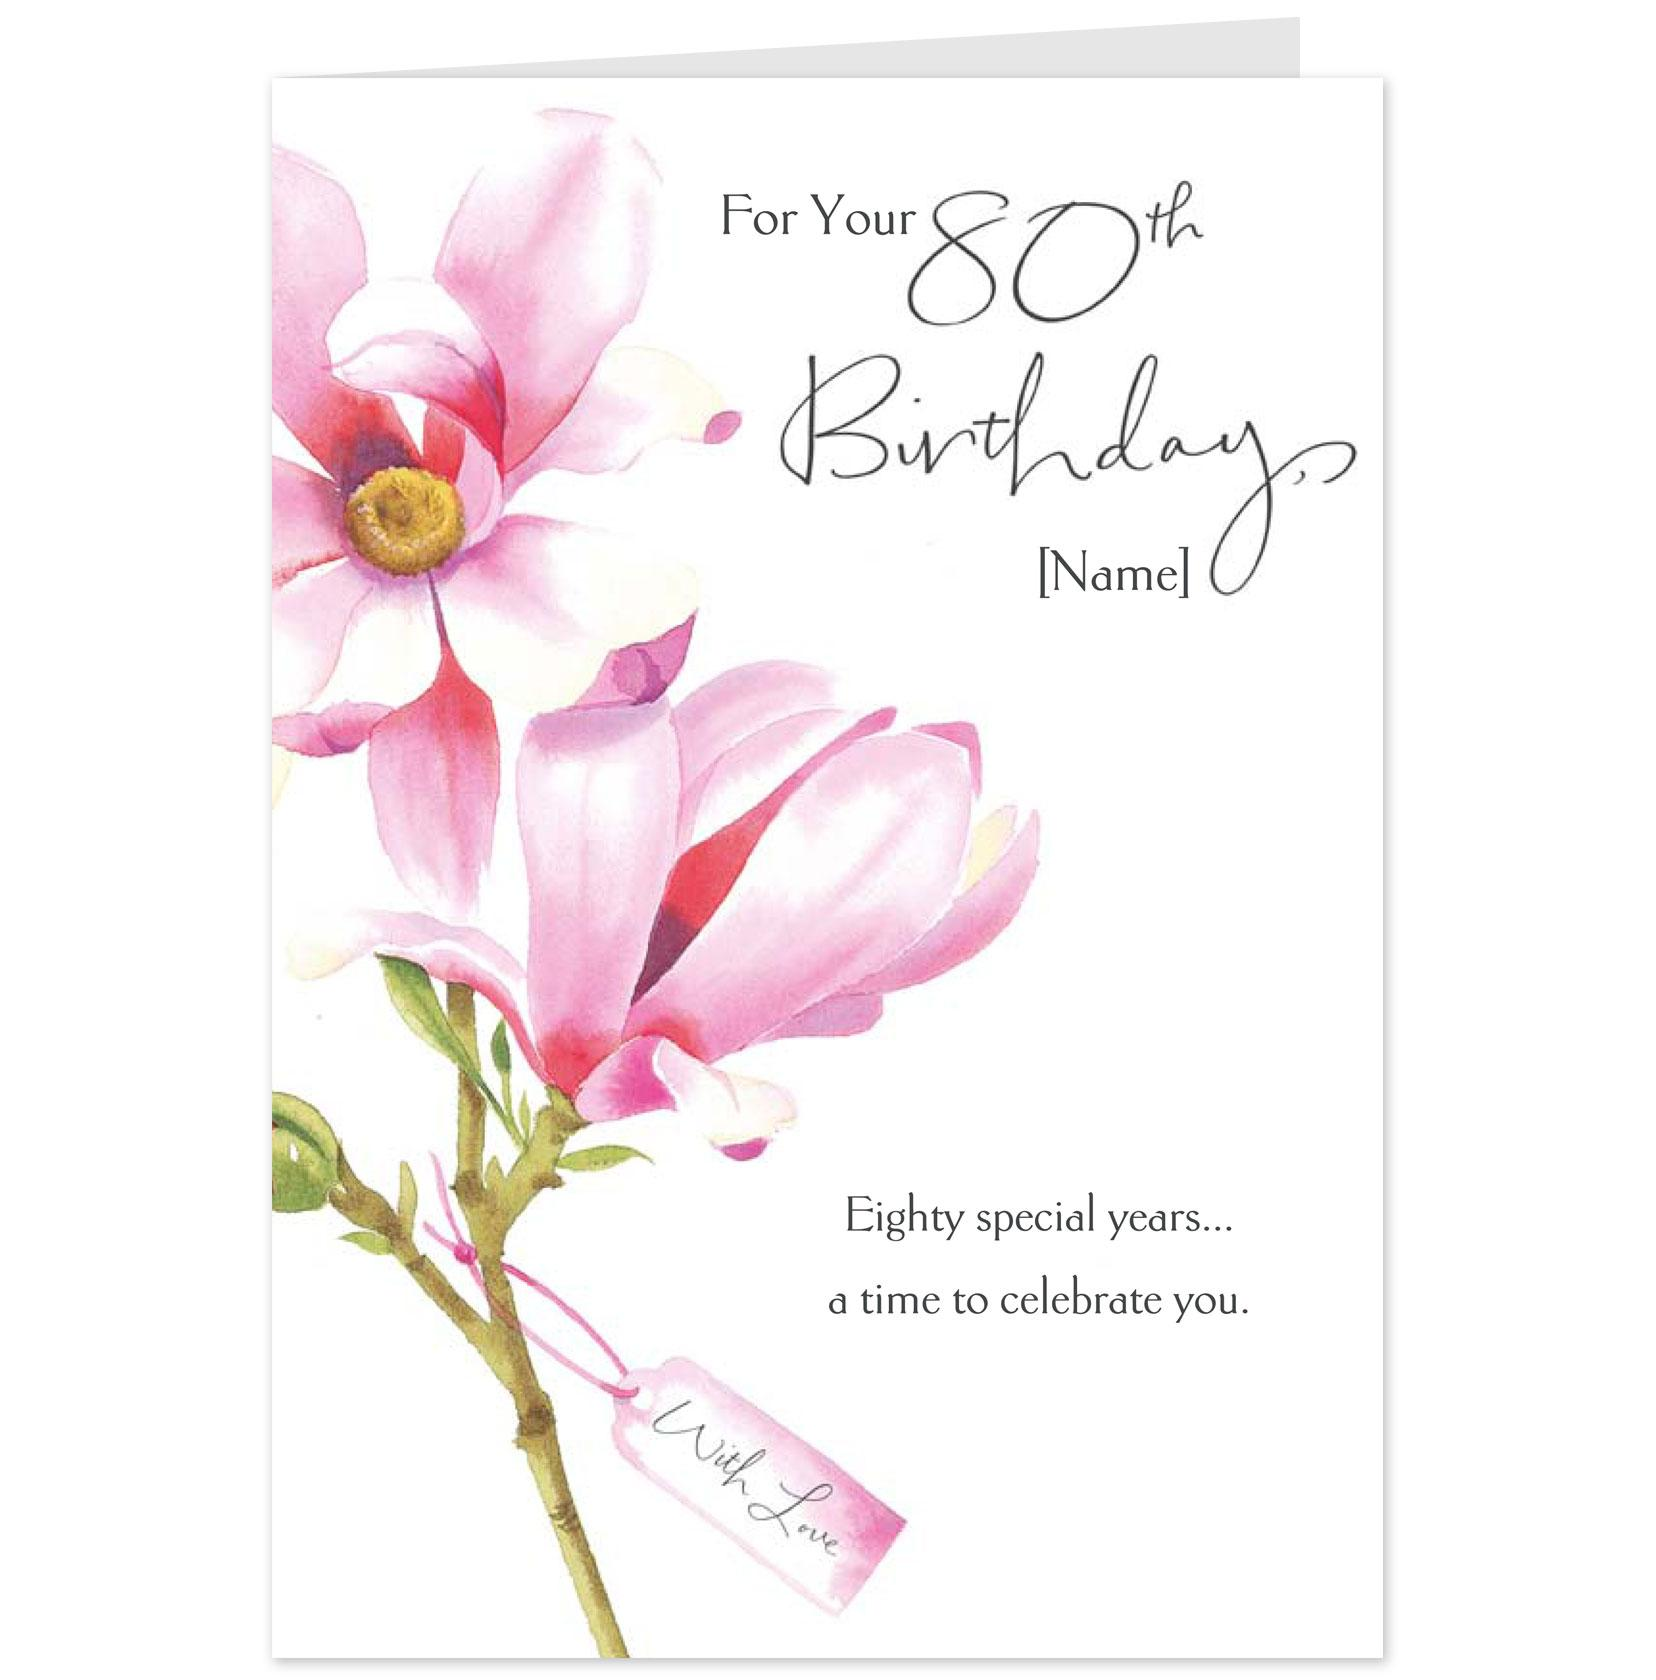 40 Birthday Quotes For Women Quotesgram: 80th Birthday Quotes For Women. QuotesGram